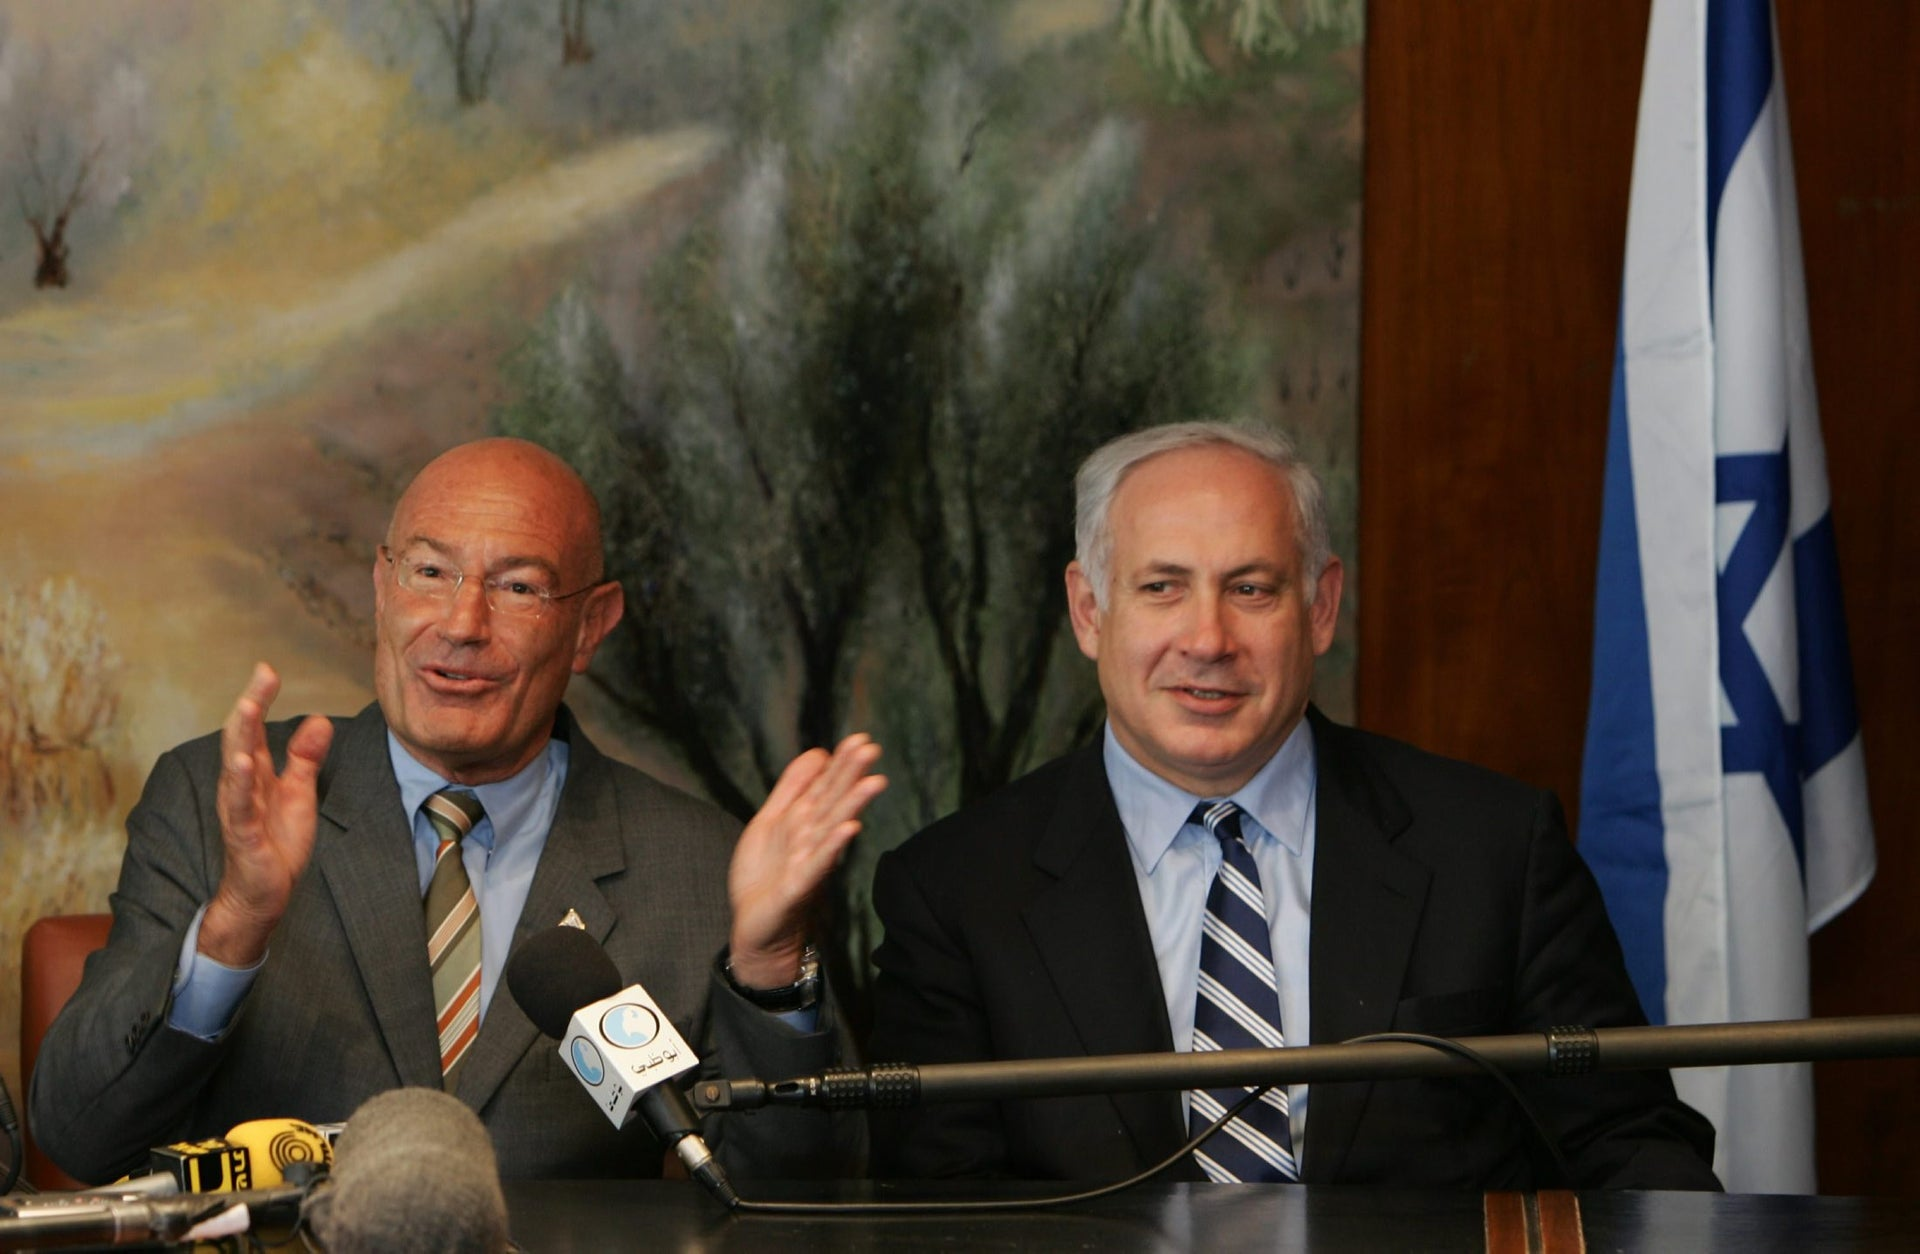 JERUSALEM, ISRAEL - MARCH 28: Israeli-American movie producer Arnon Milchan (L) is flanked by Finance Minister Benjamin Netanyahu as he announces his donation of US$100 million to establish a new Israeli university, at a press conference on March 28, 2005 in Jerusalem, Israel. The Israeli-born head of New Regency Productions said the campus would be based in the Galilee town of Carmiel in northern Israel. The donation is apparently the largest by a private individual for a project in Israel. (Photo by David Silverman/Getty Images)